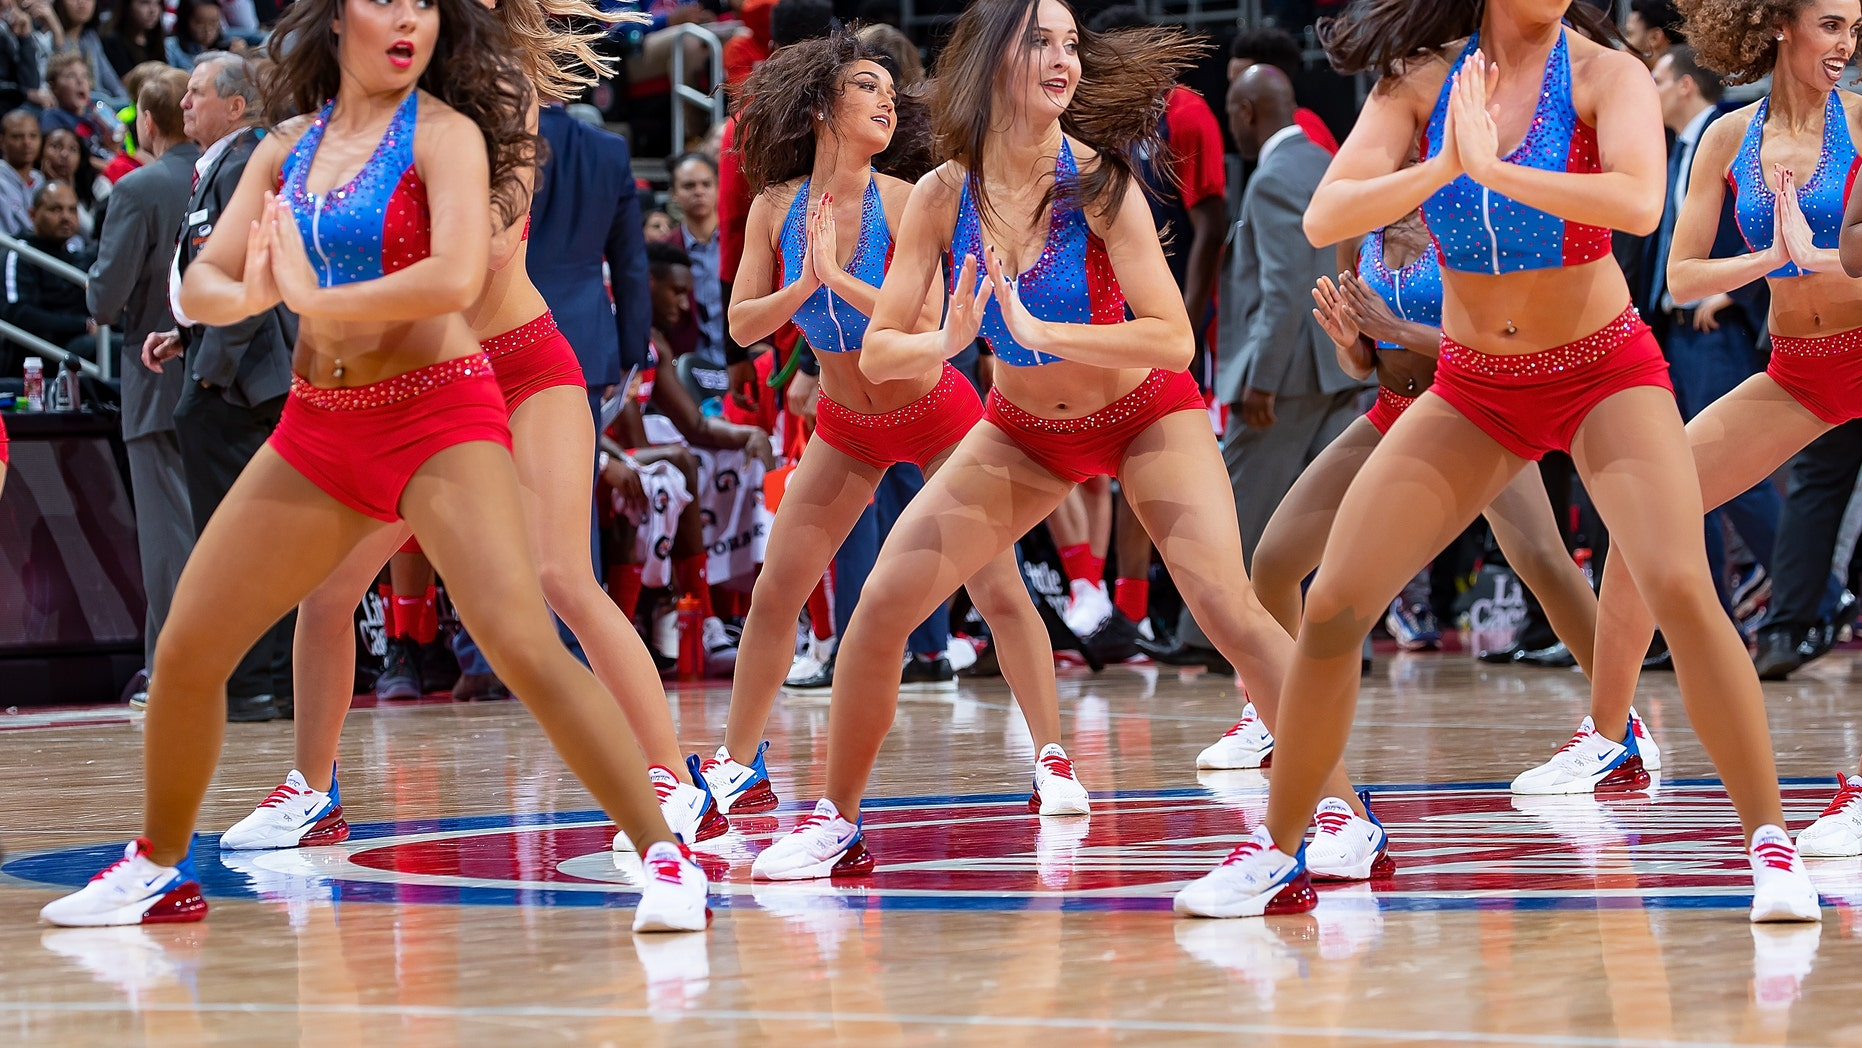 The Pistons Dancers entertain the fans on a play stoppage in the second half of an NBA game at Little Caesars Arena on Dec. 26, 2018 in Detroit, Mich.